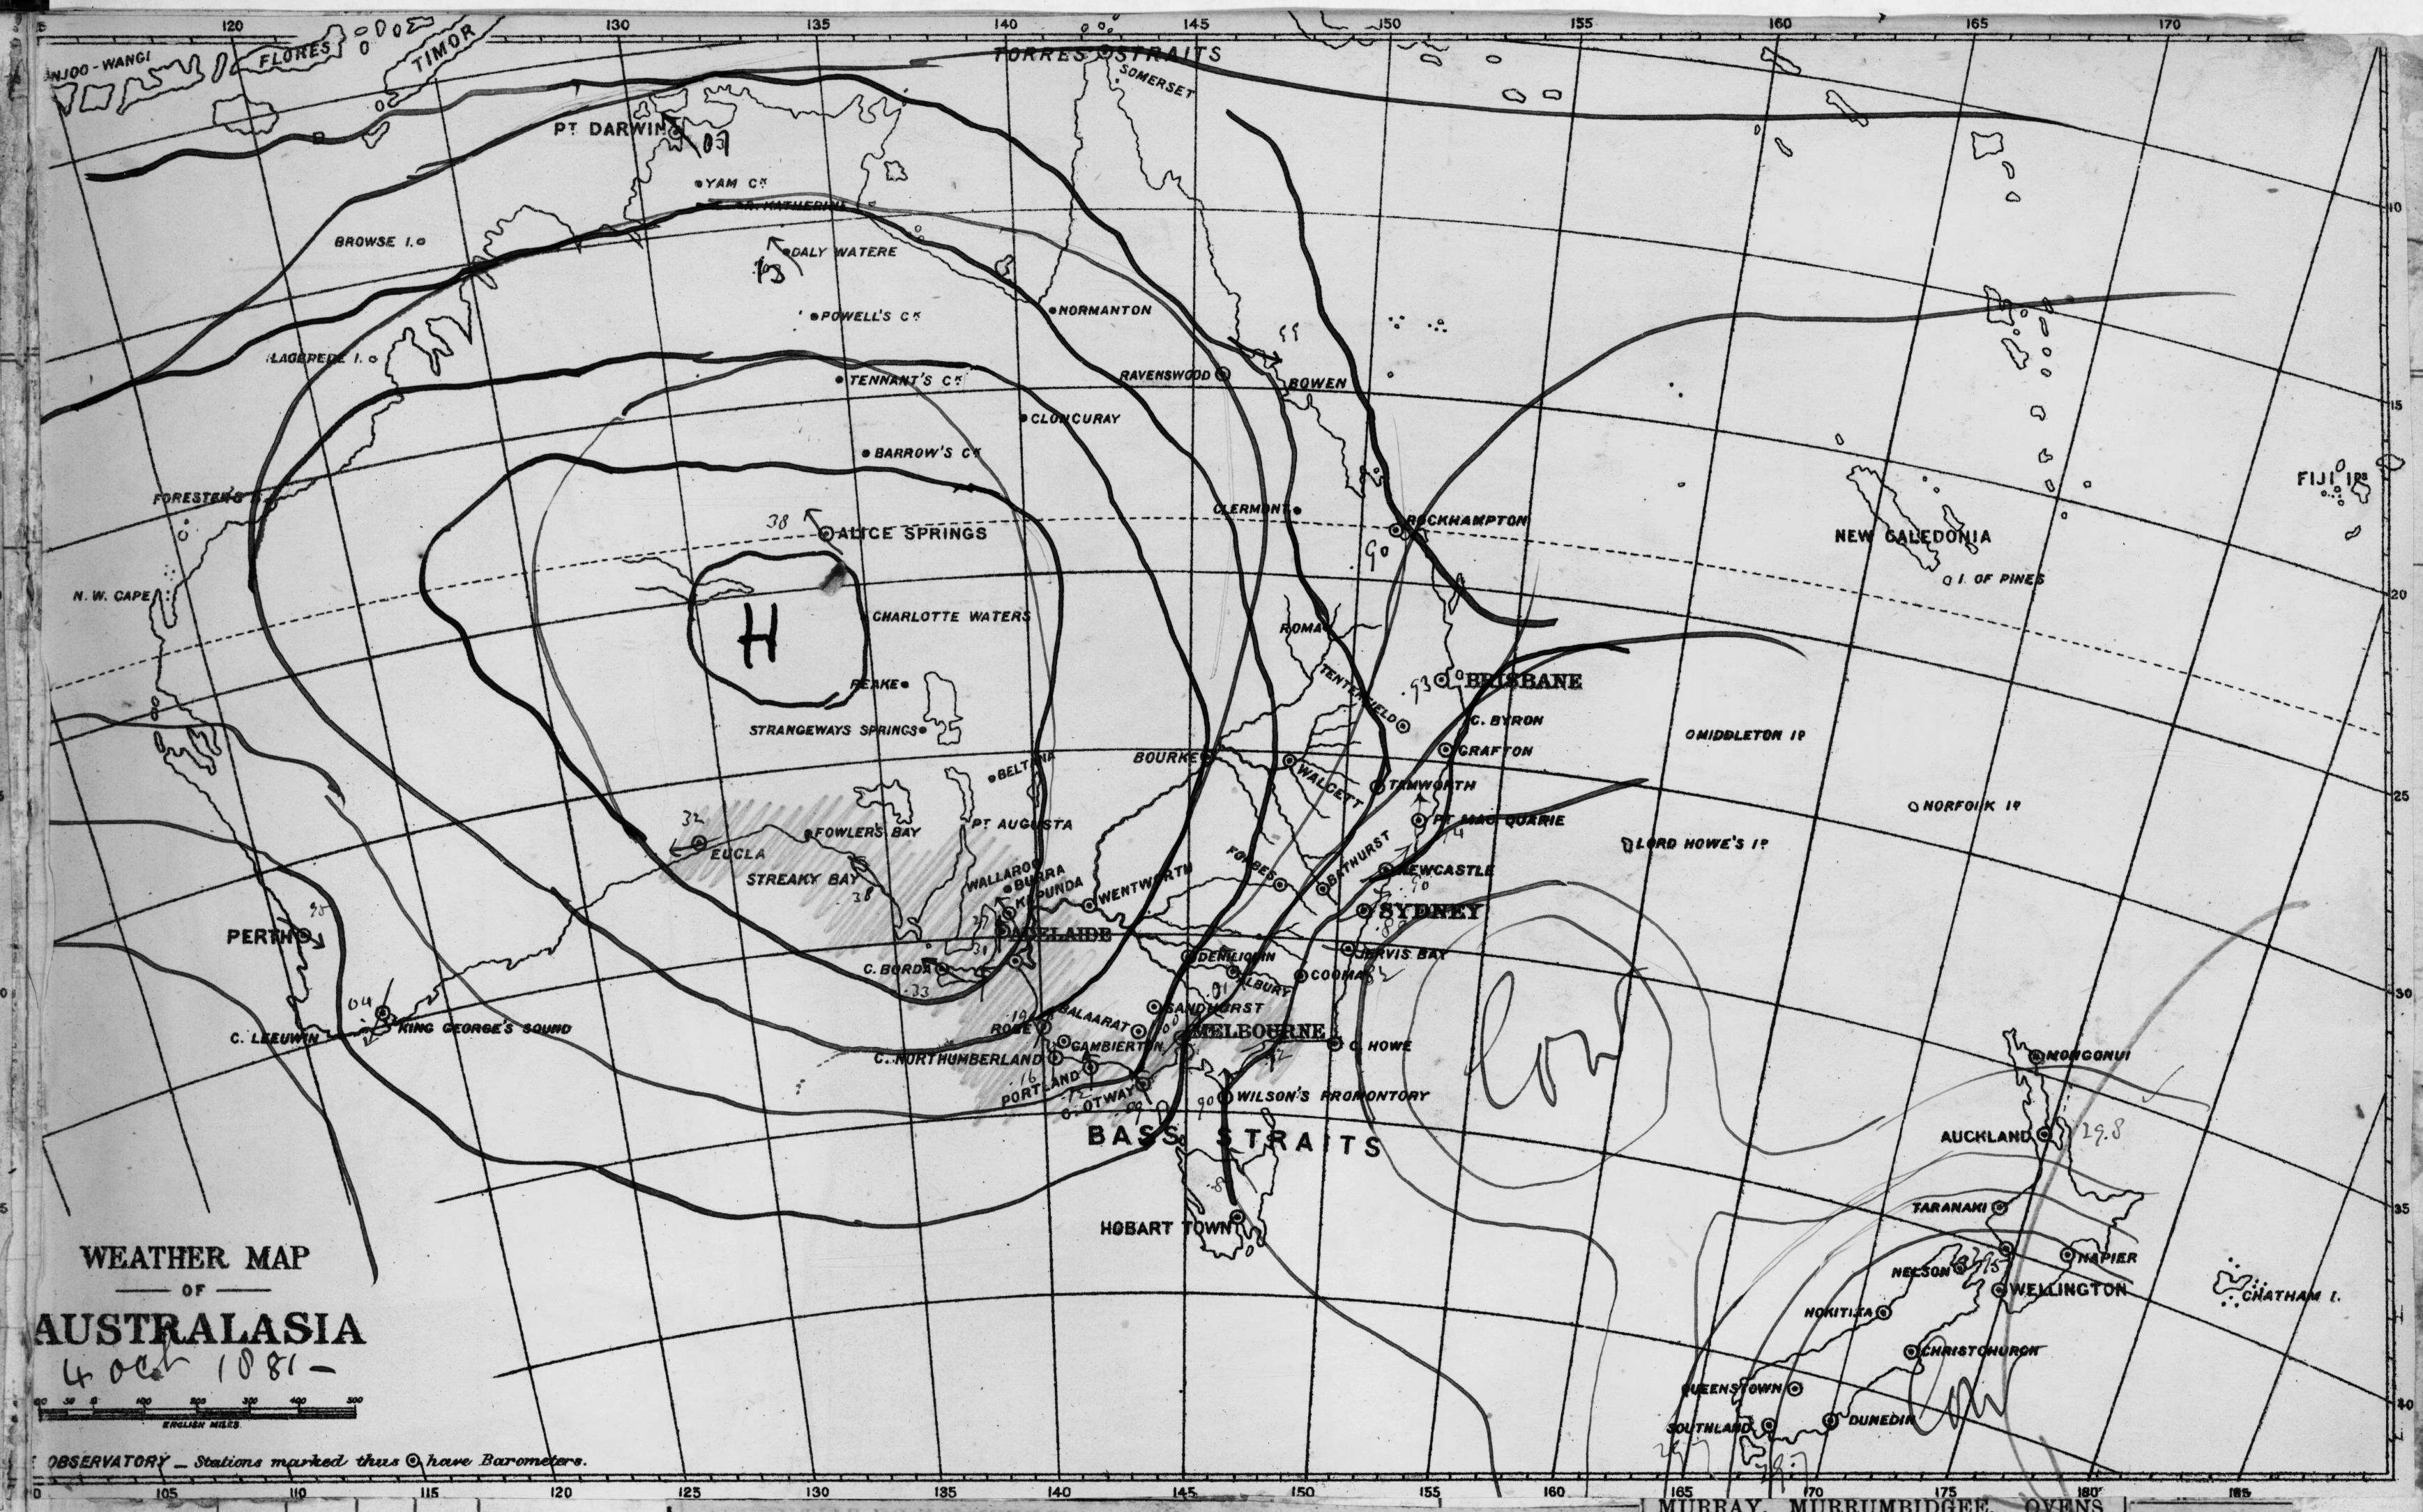 18811004c0900 Weather map